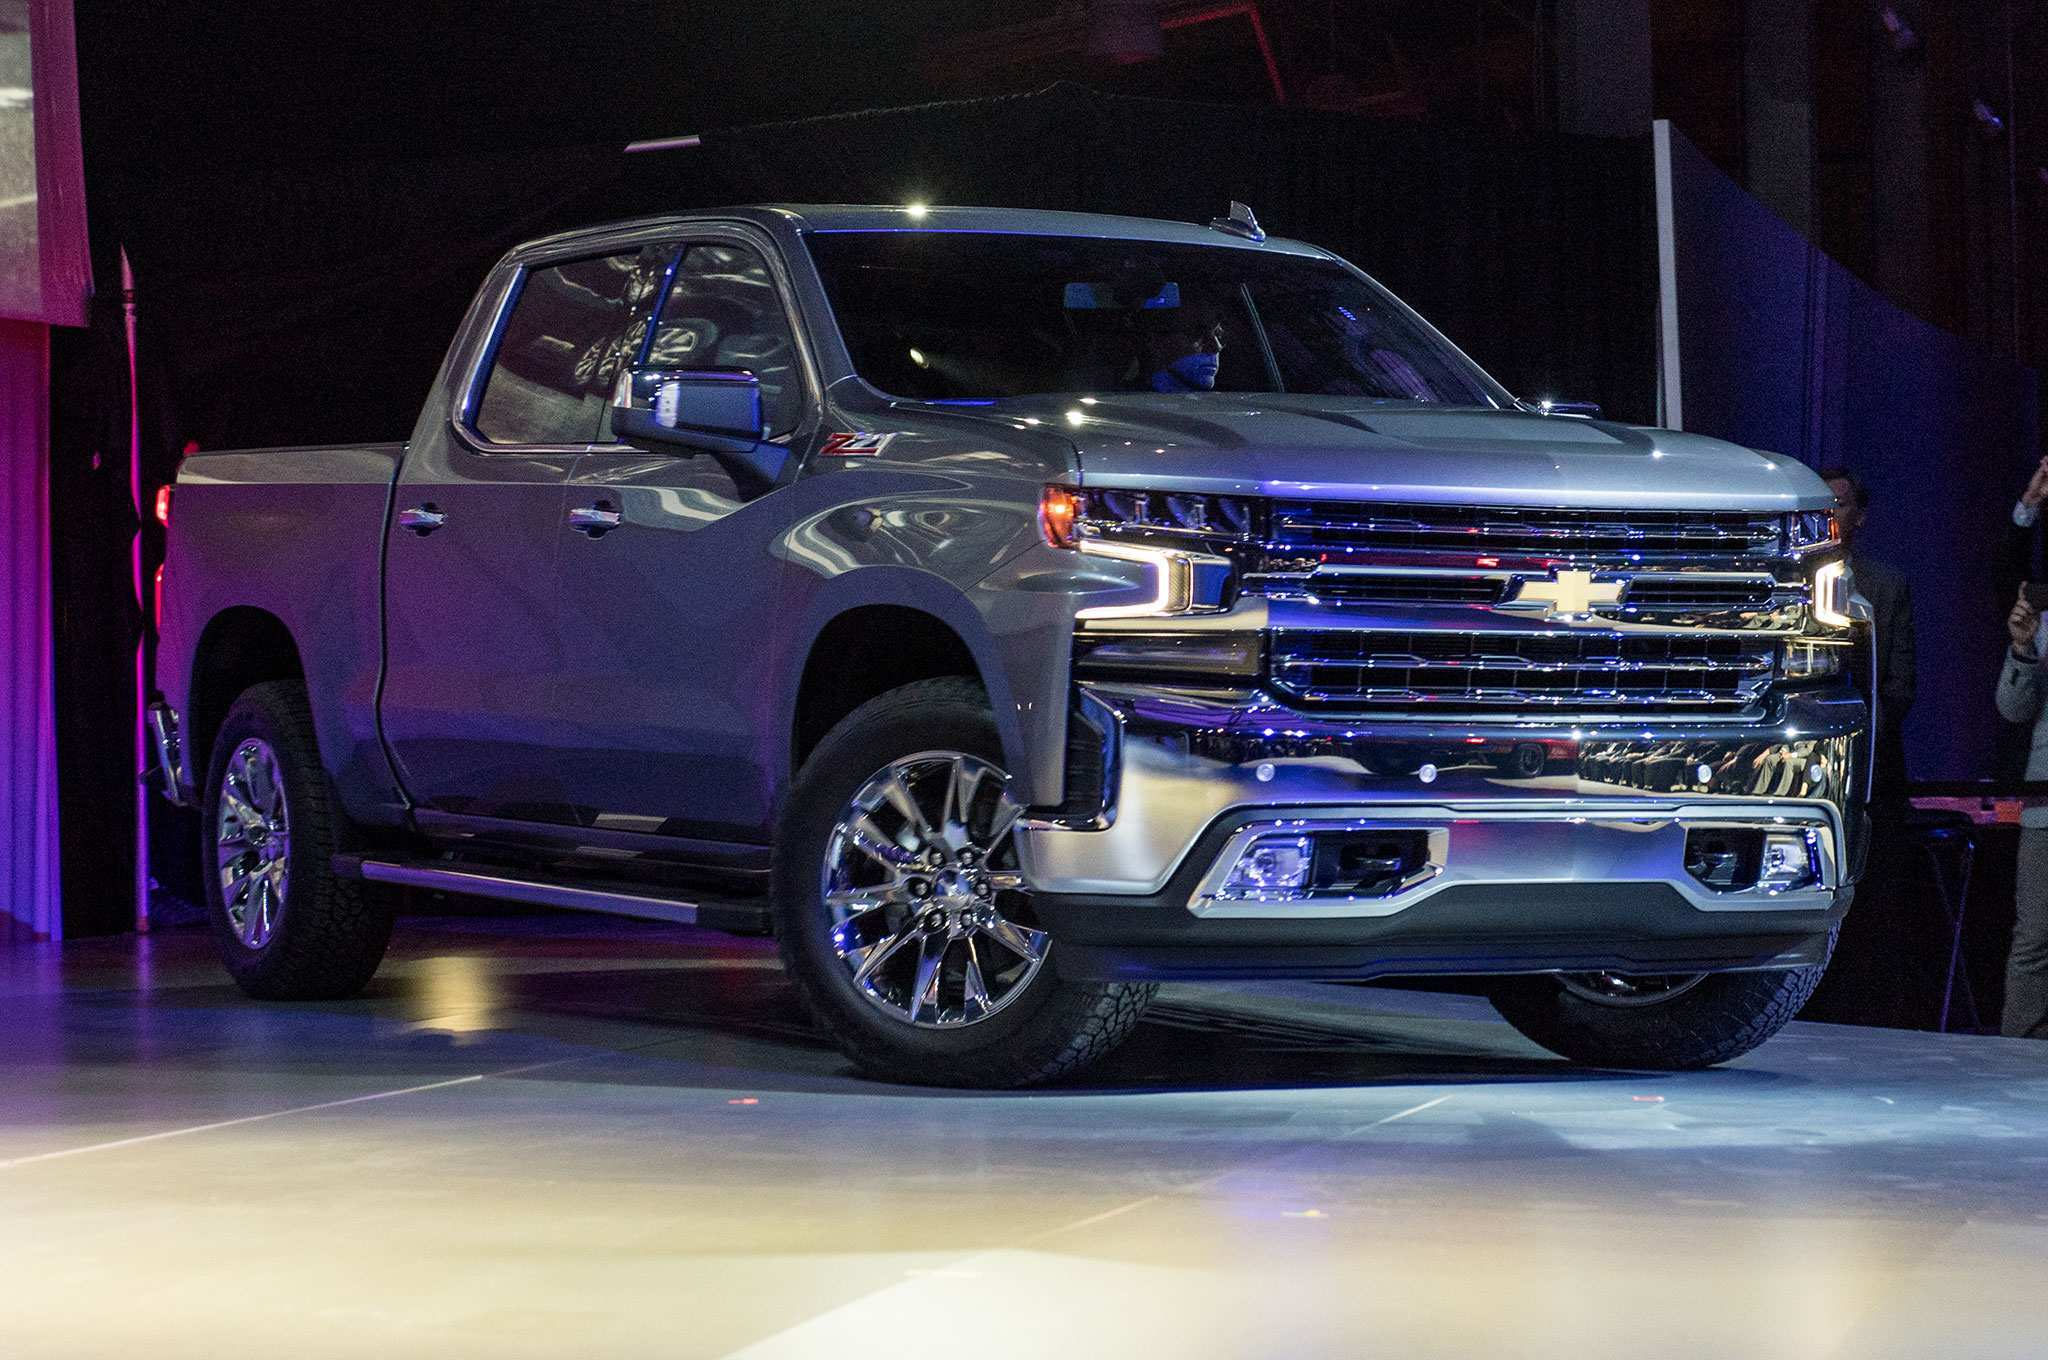 67 New 2019 Chevrolet Silverado Diesel Research New by 2019 Chevrolet Silverado Diesel